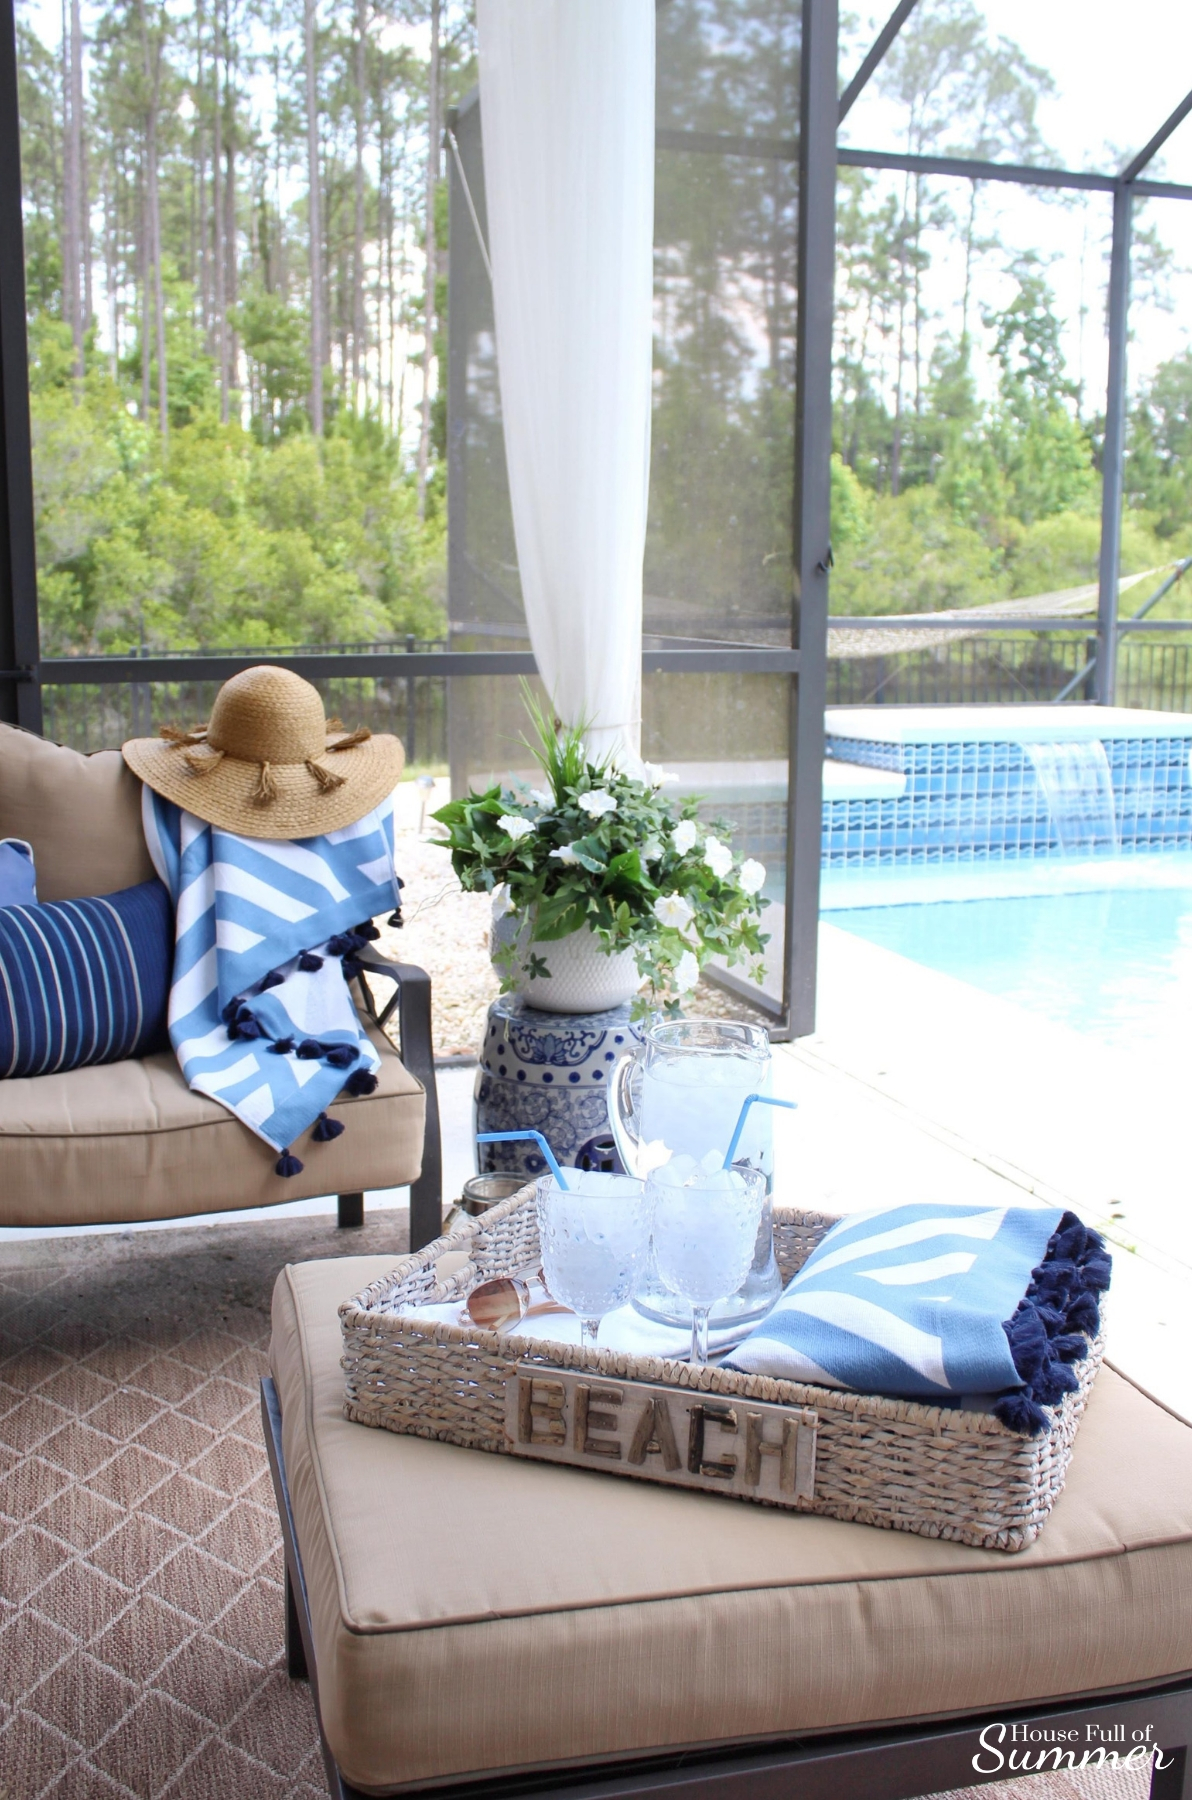 Blue & White Poolside Retreat | House Full of Summer - Serena & Lily beach towels, patio decor, outdoor living room, cozy patio, chinoiserie chic garden stool, coastal home decor, Florida home, lanai, beach accessories, Summer decor, striped towels, tassels